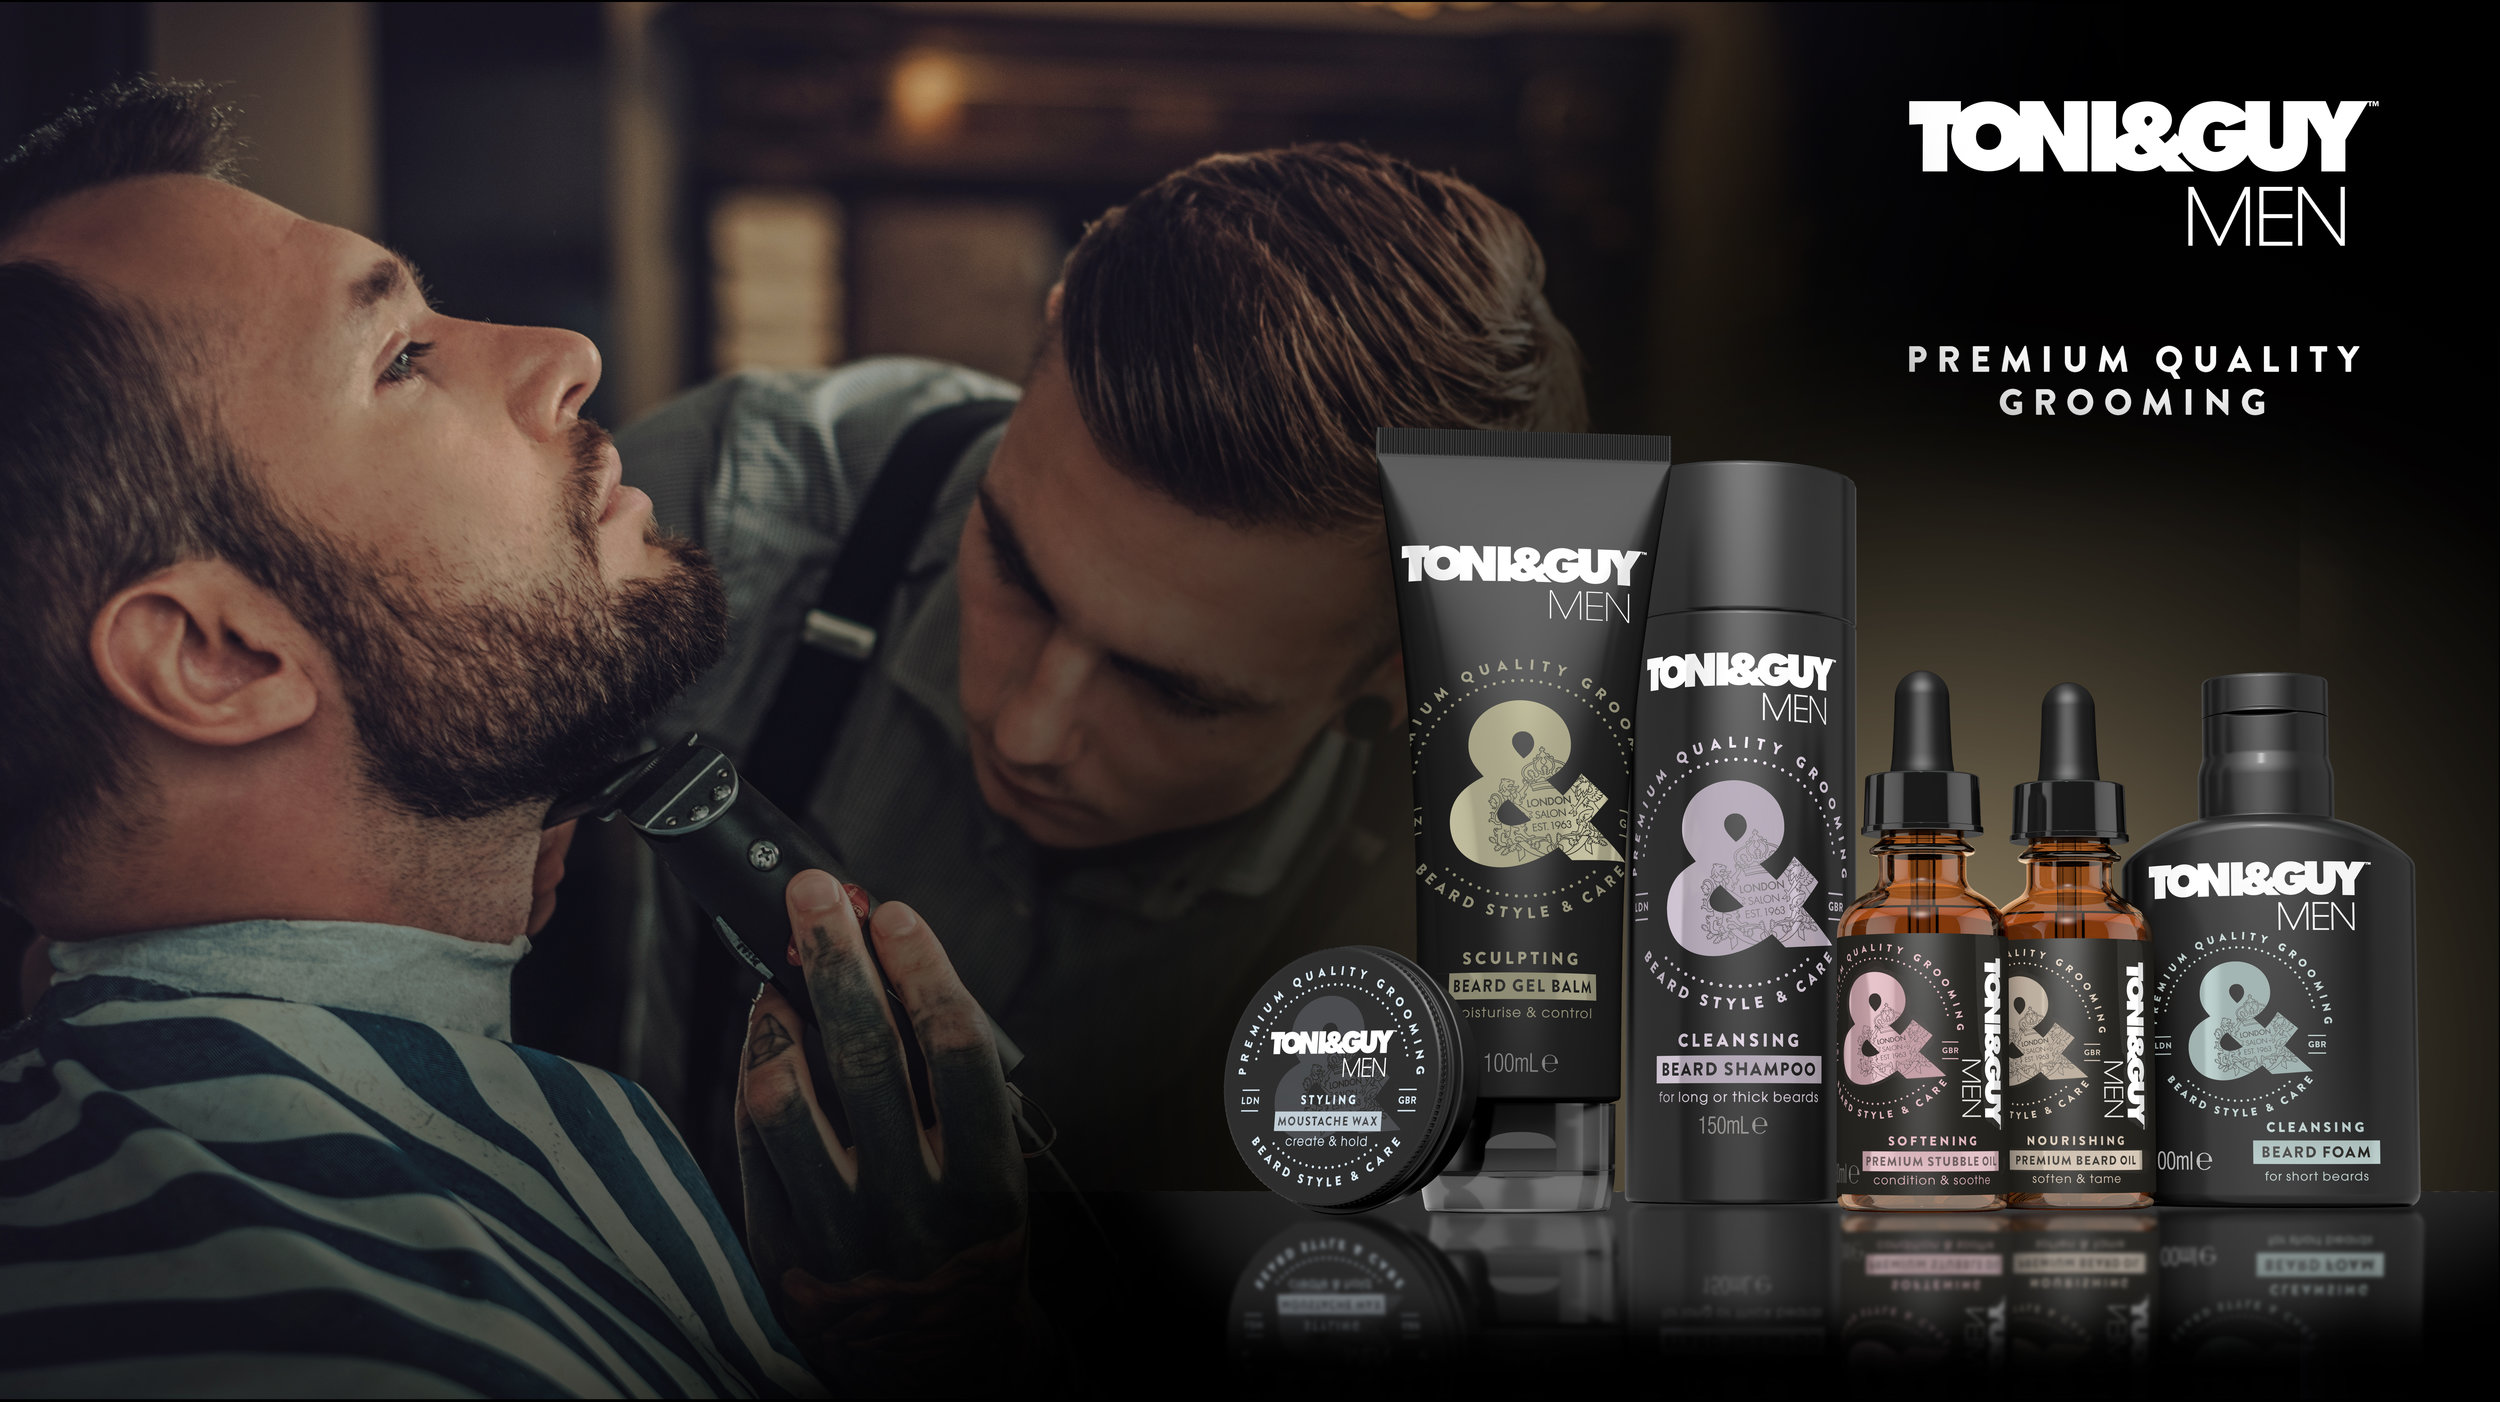 T&G_Men_Premium quality grooming.jpg